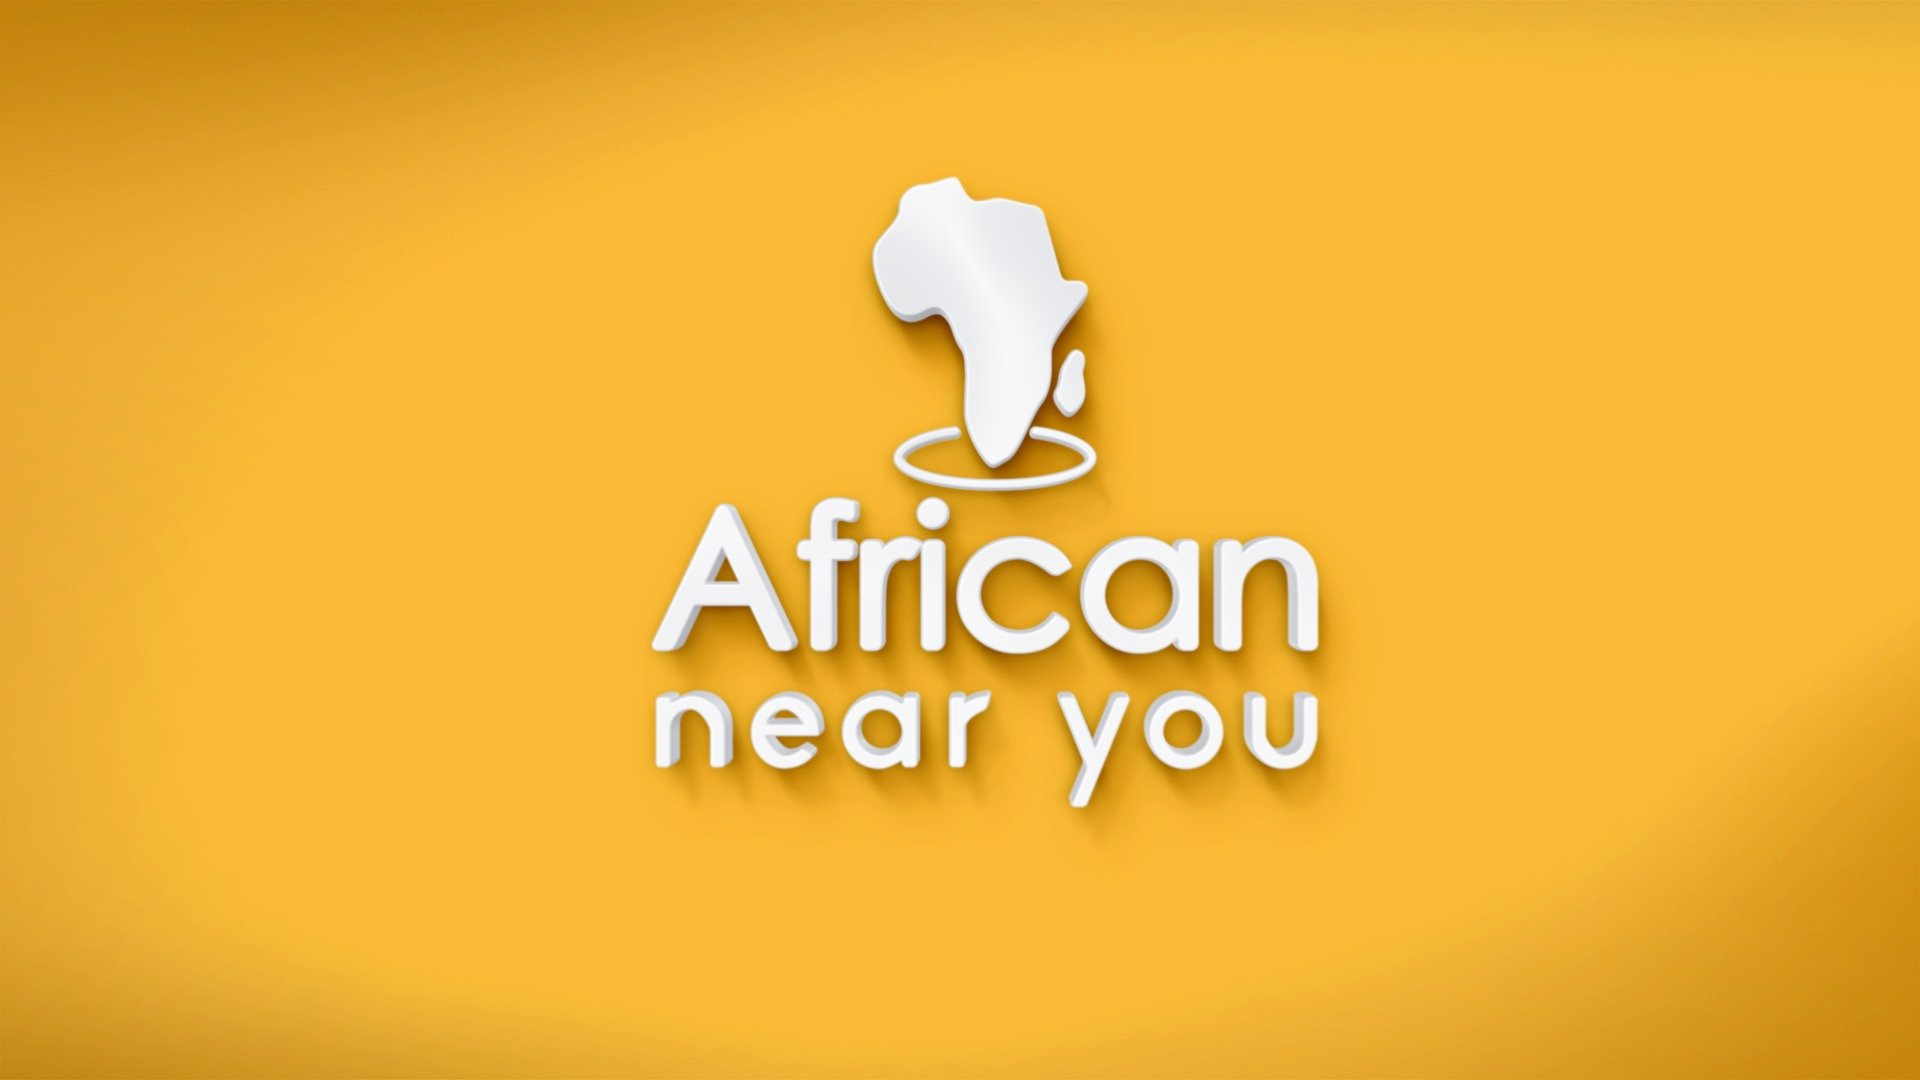 African Near You